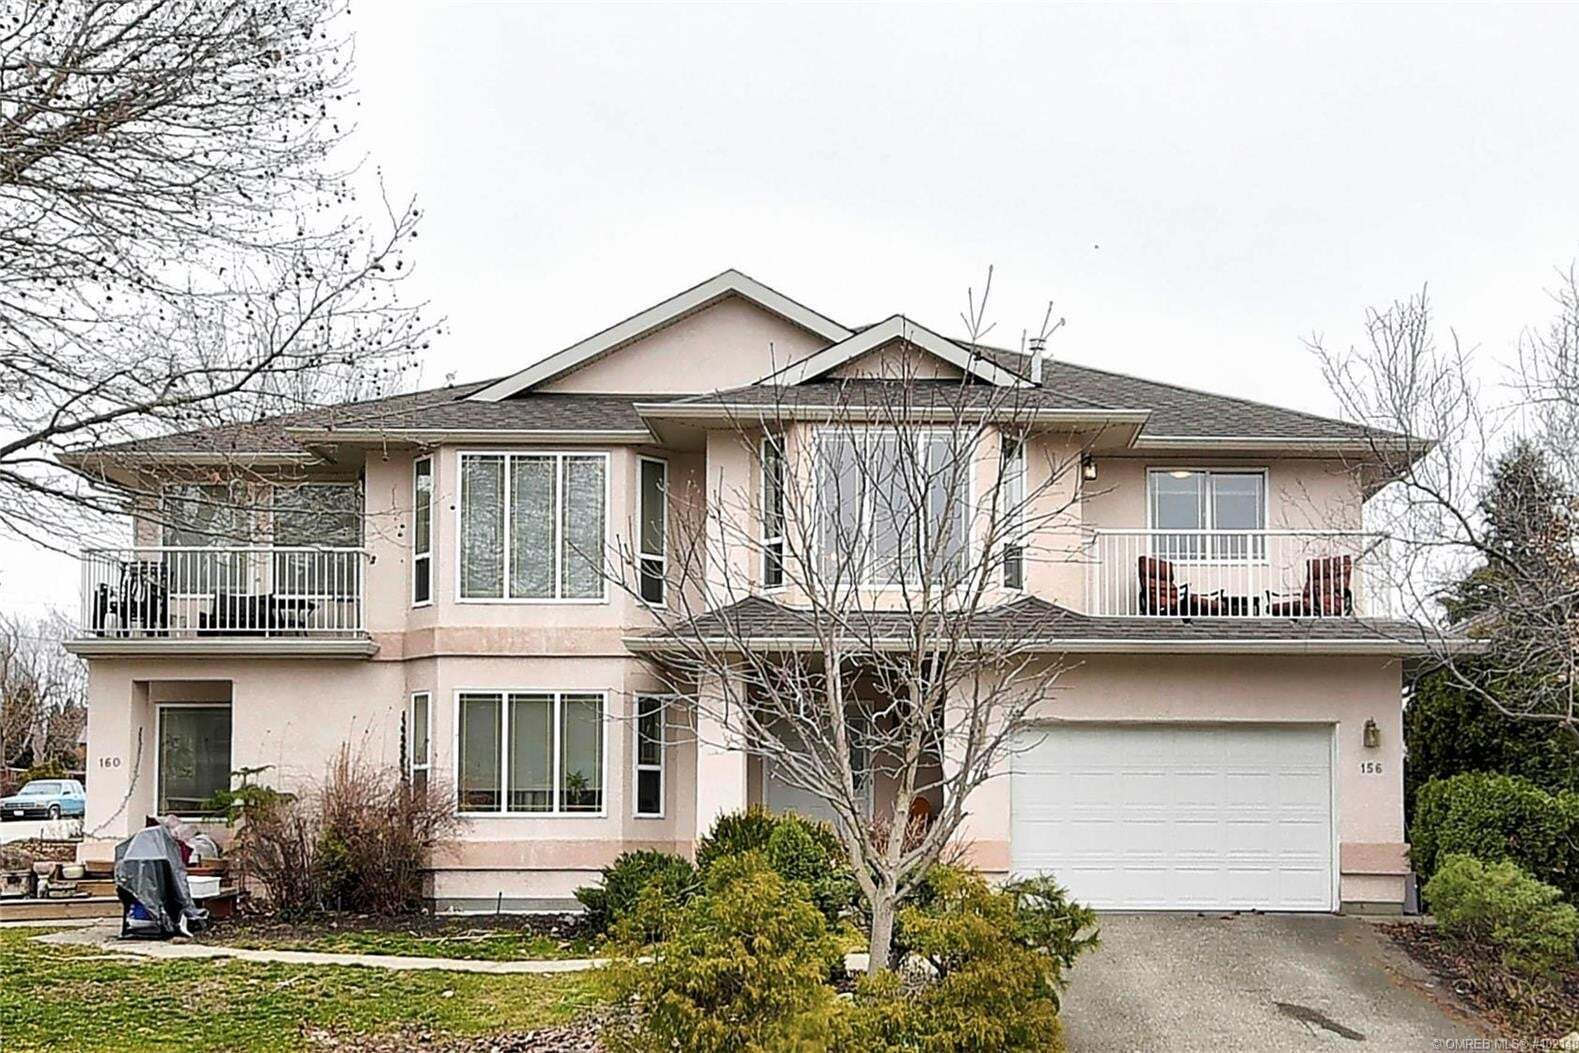 Townhouse for sale at 158 Wyndham Cres Kelowna British Columbia - MLS: 10214885